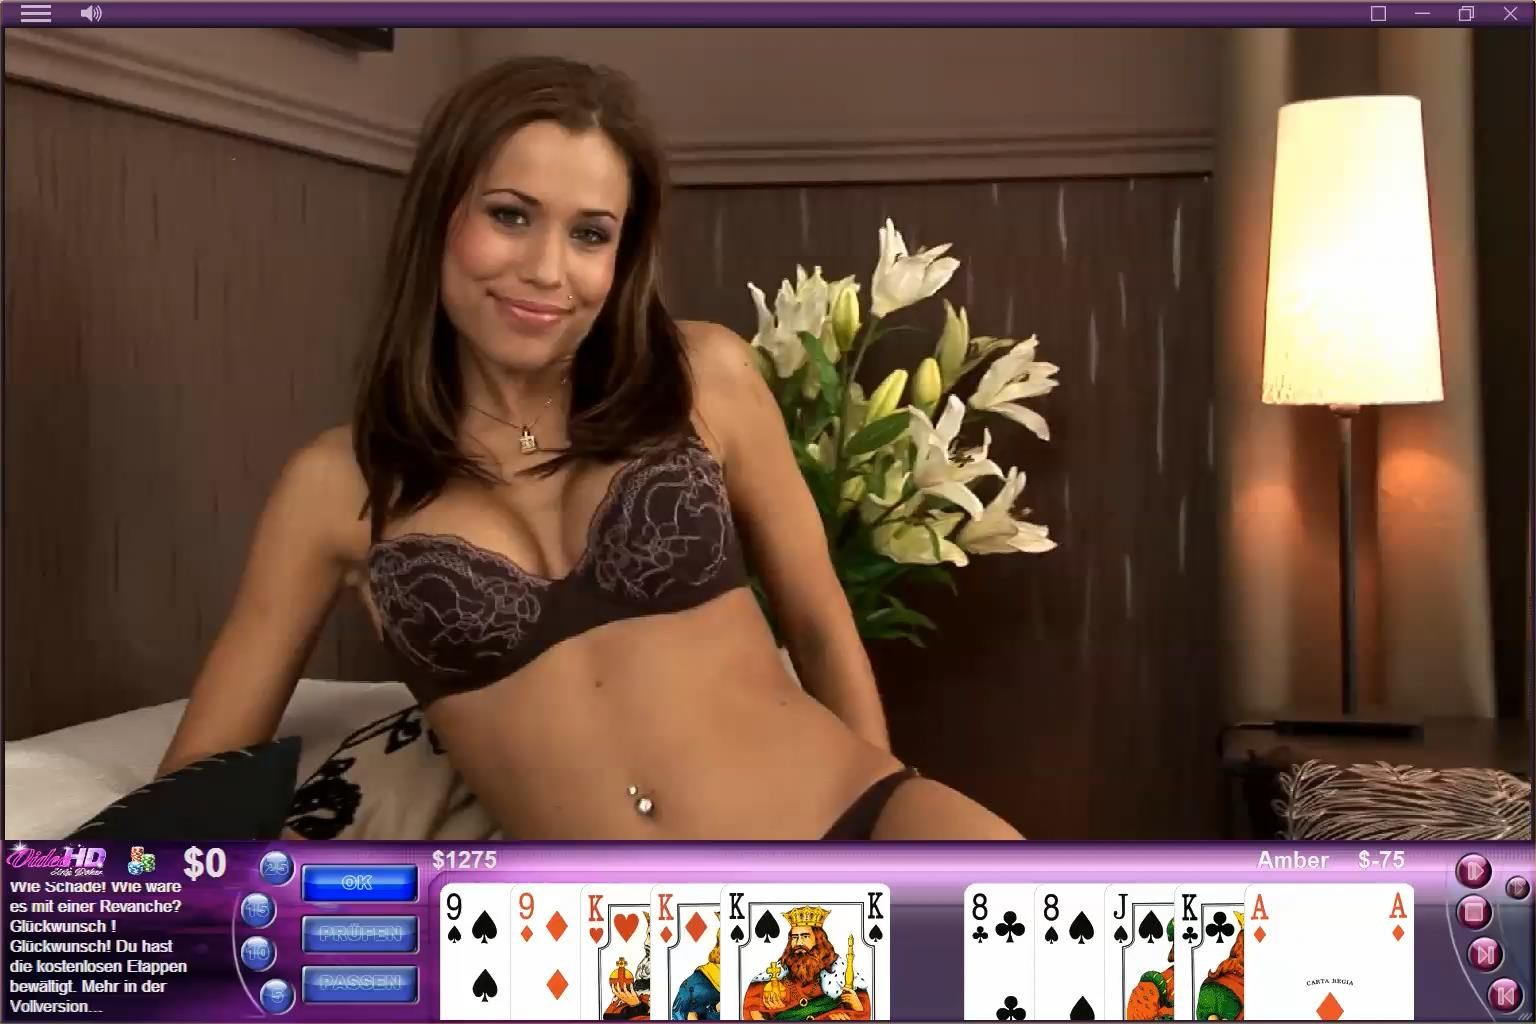 That cock online strip texas holdem Mmmm